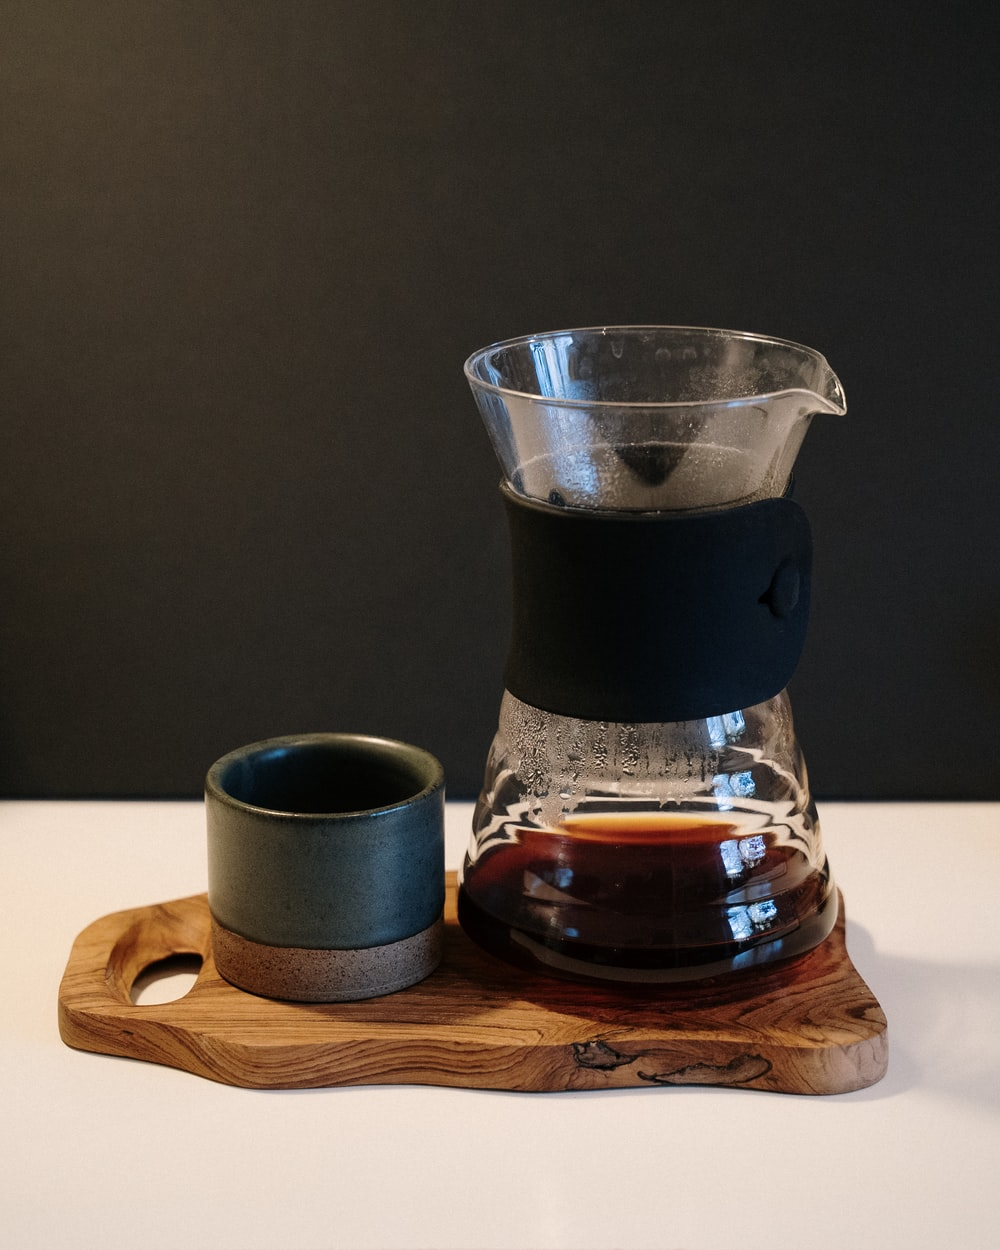 black coffee in clear glass pitcher on brown wooden coaster